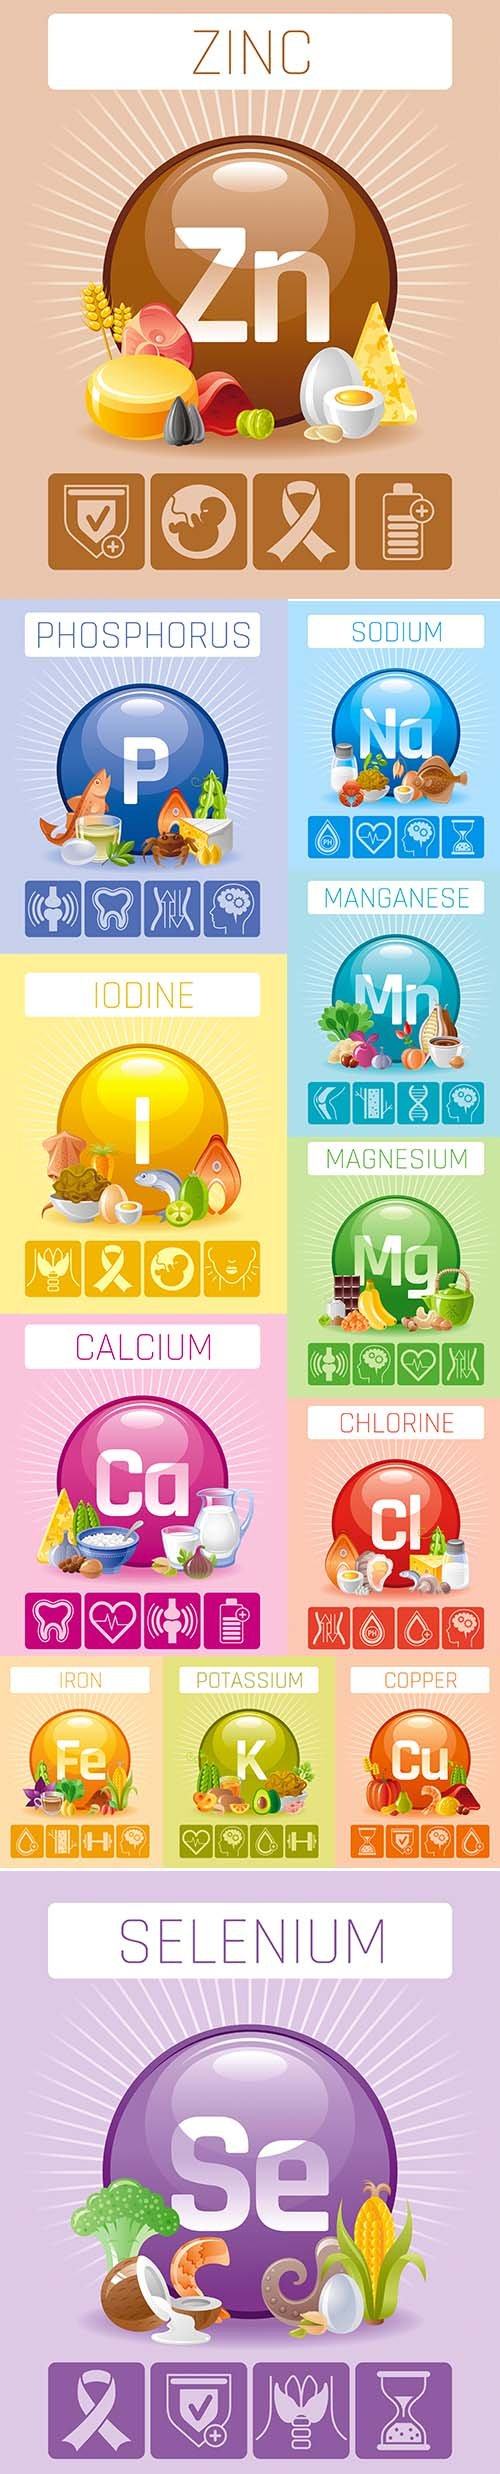 Mineral and Vitamin Supplement Illustrations Vector